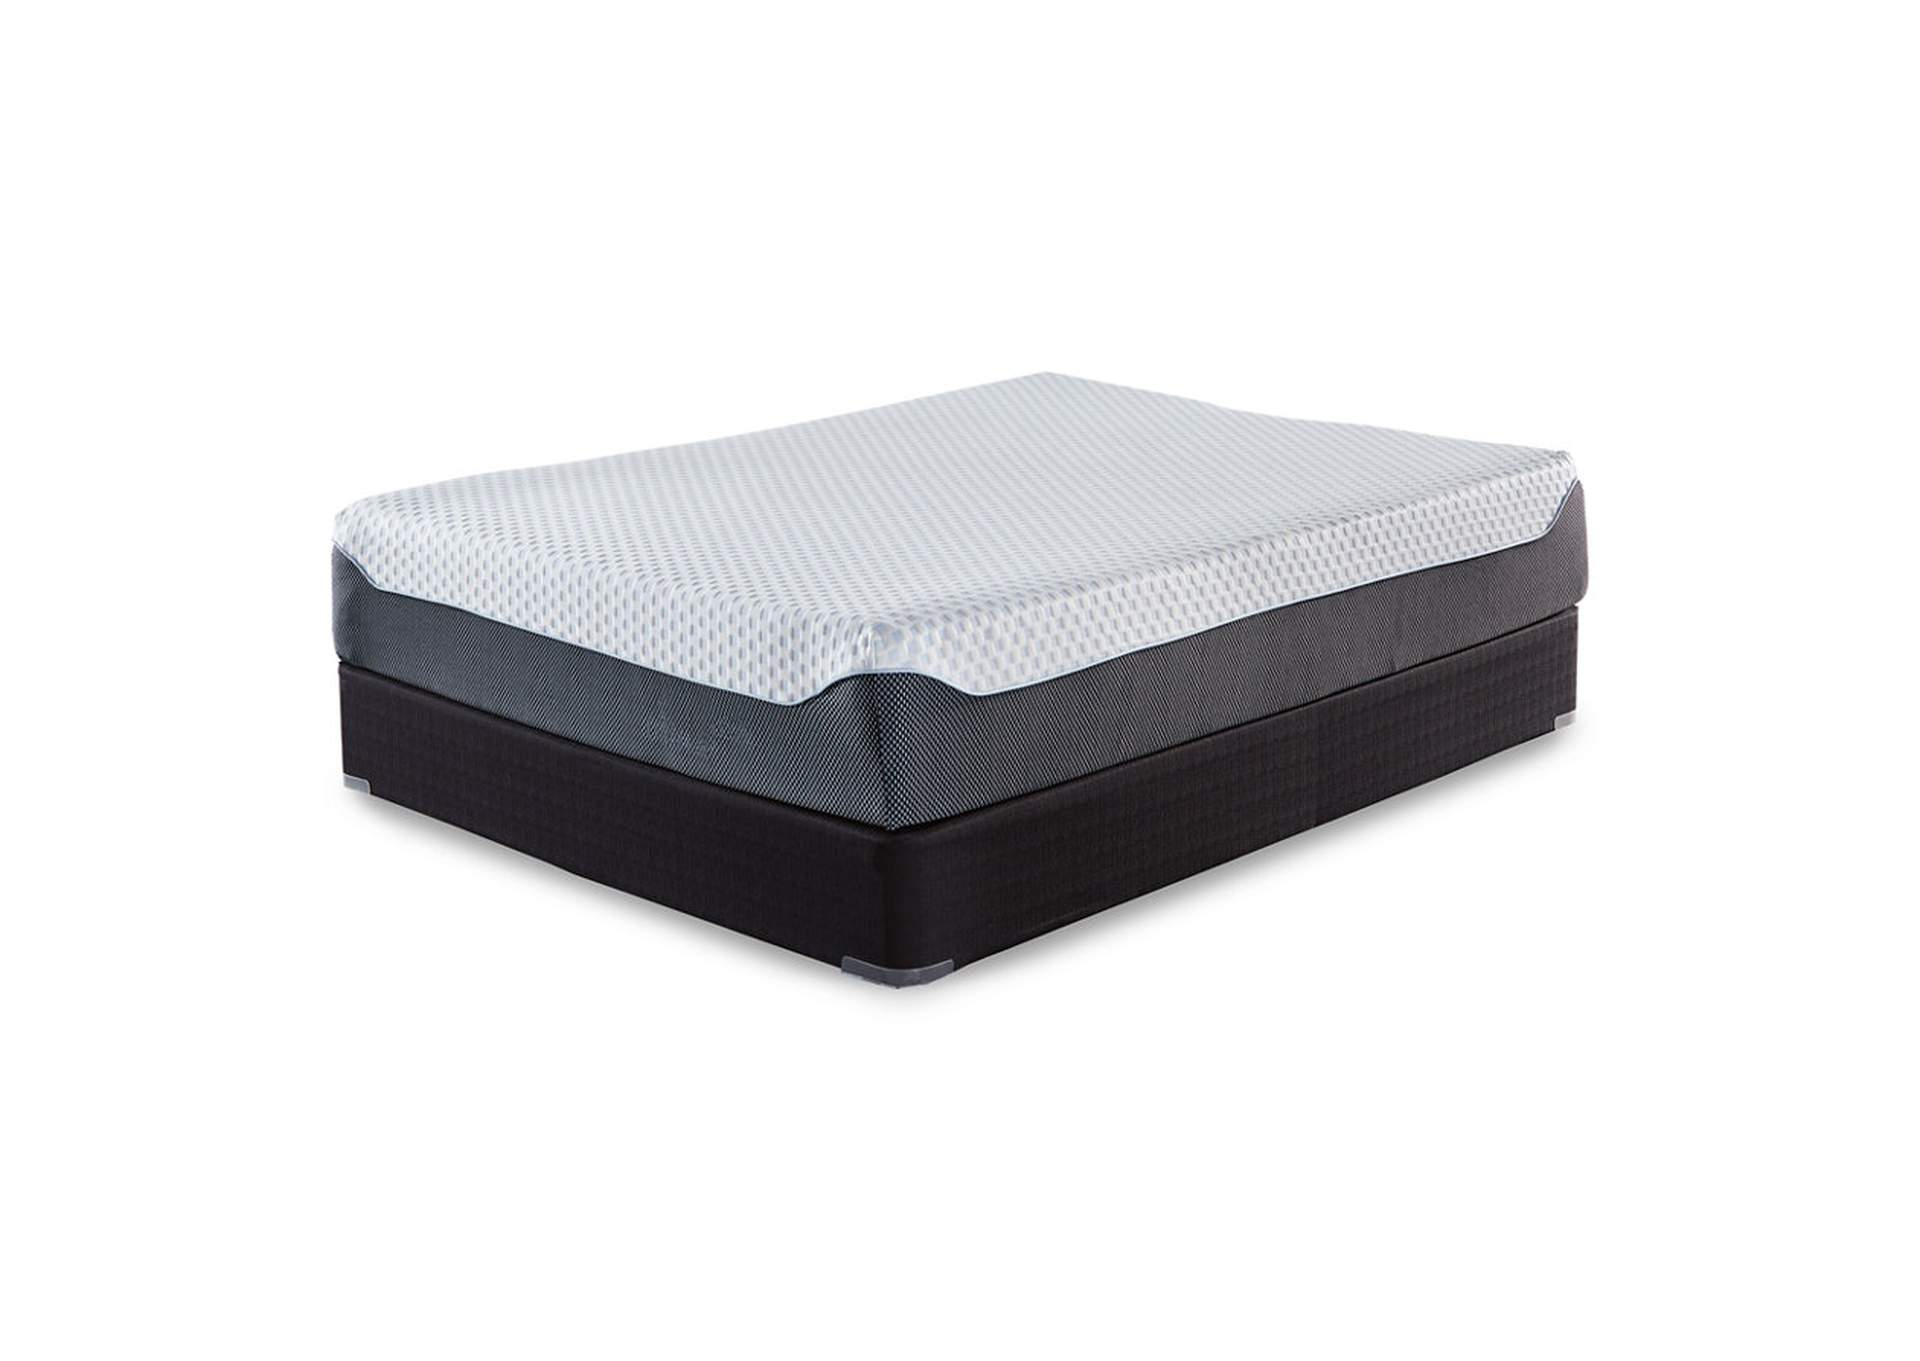 12 Inch Chime Elite Memory Foam Queen Mattress,Sierra Sleep by Ashley